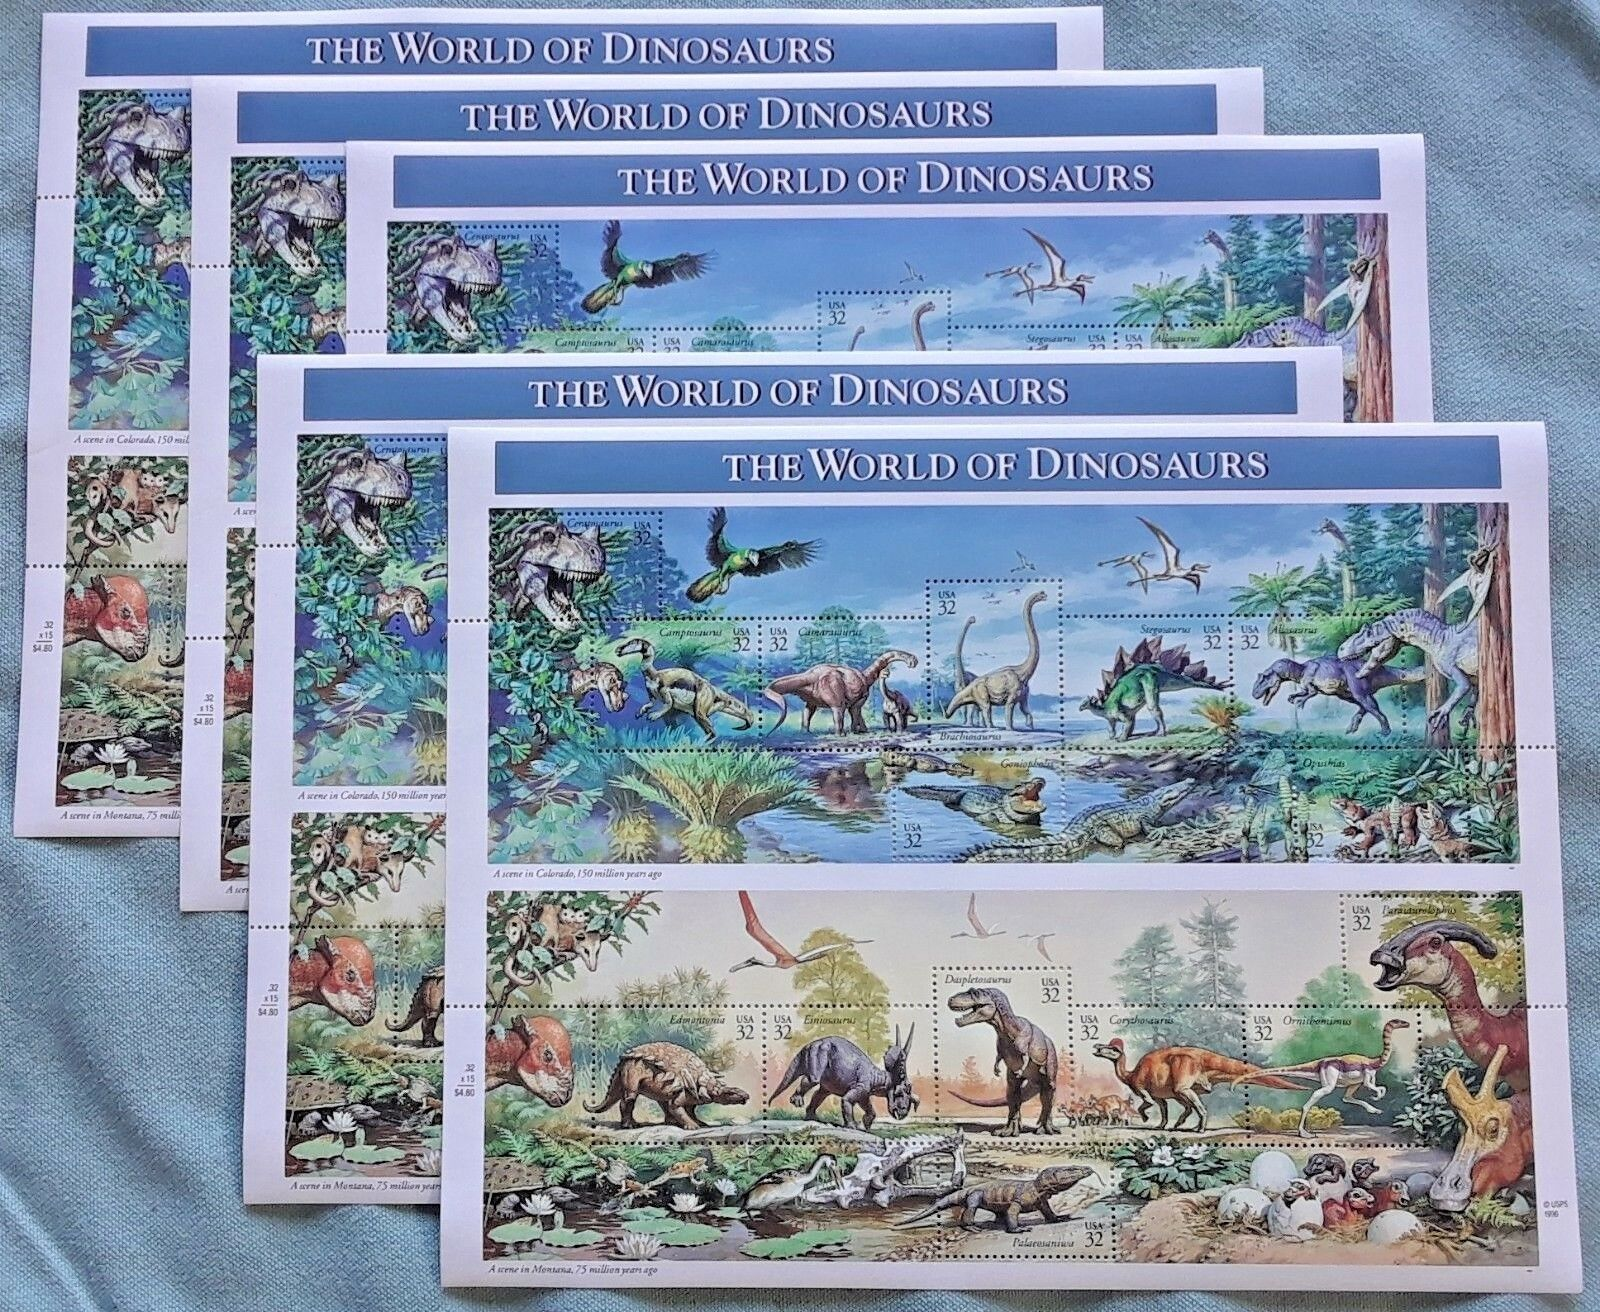 Five Sheets x 15 = 75 THE WORLD OF DINOSAURS 32 ¢ US PS Postage Stamps. Sc# 3136